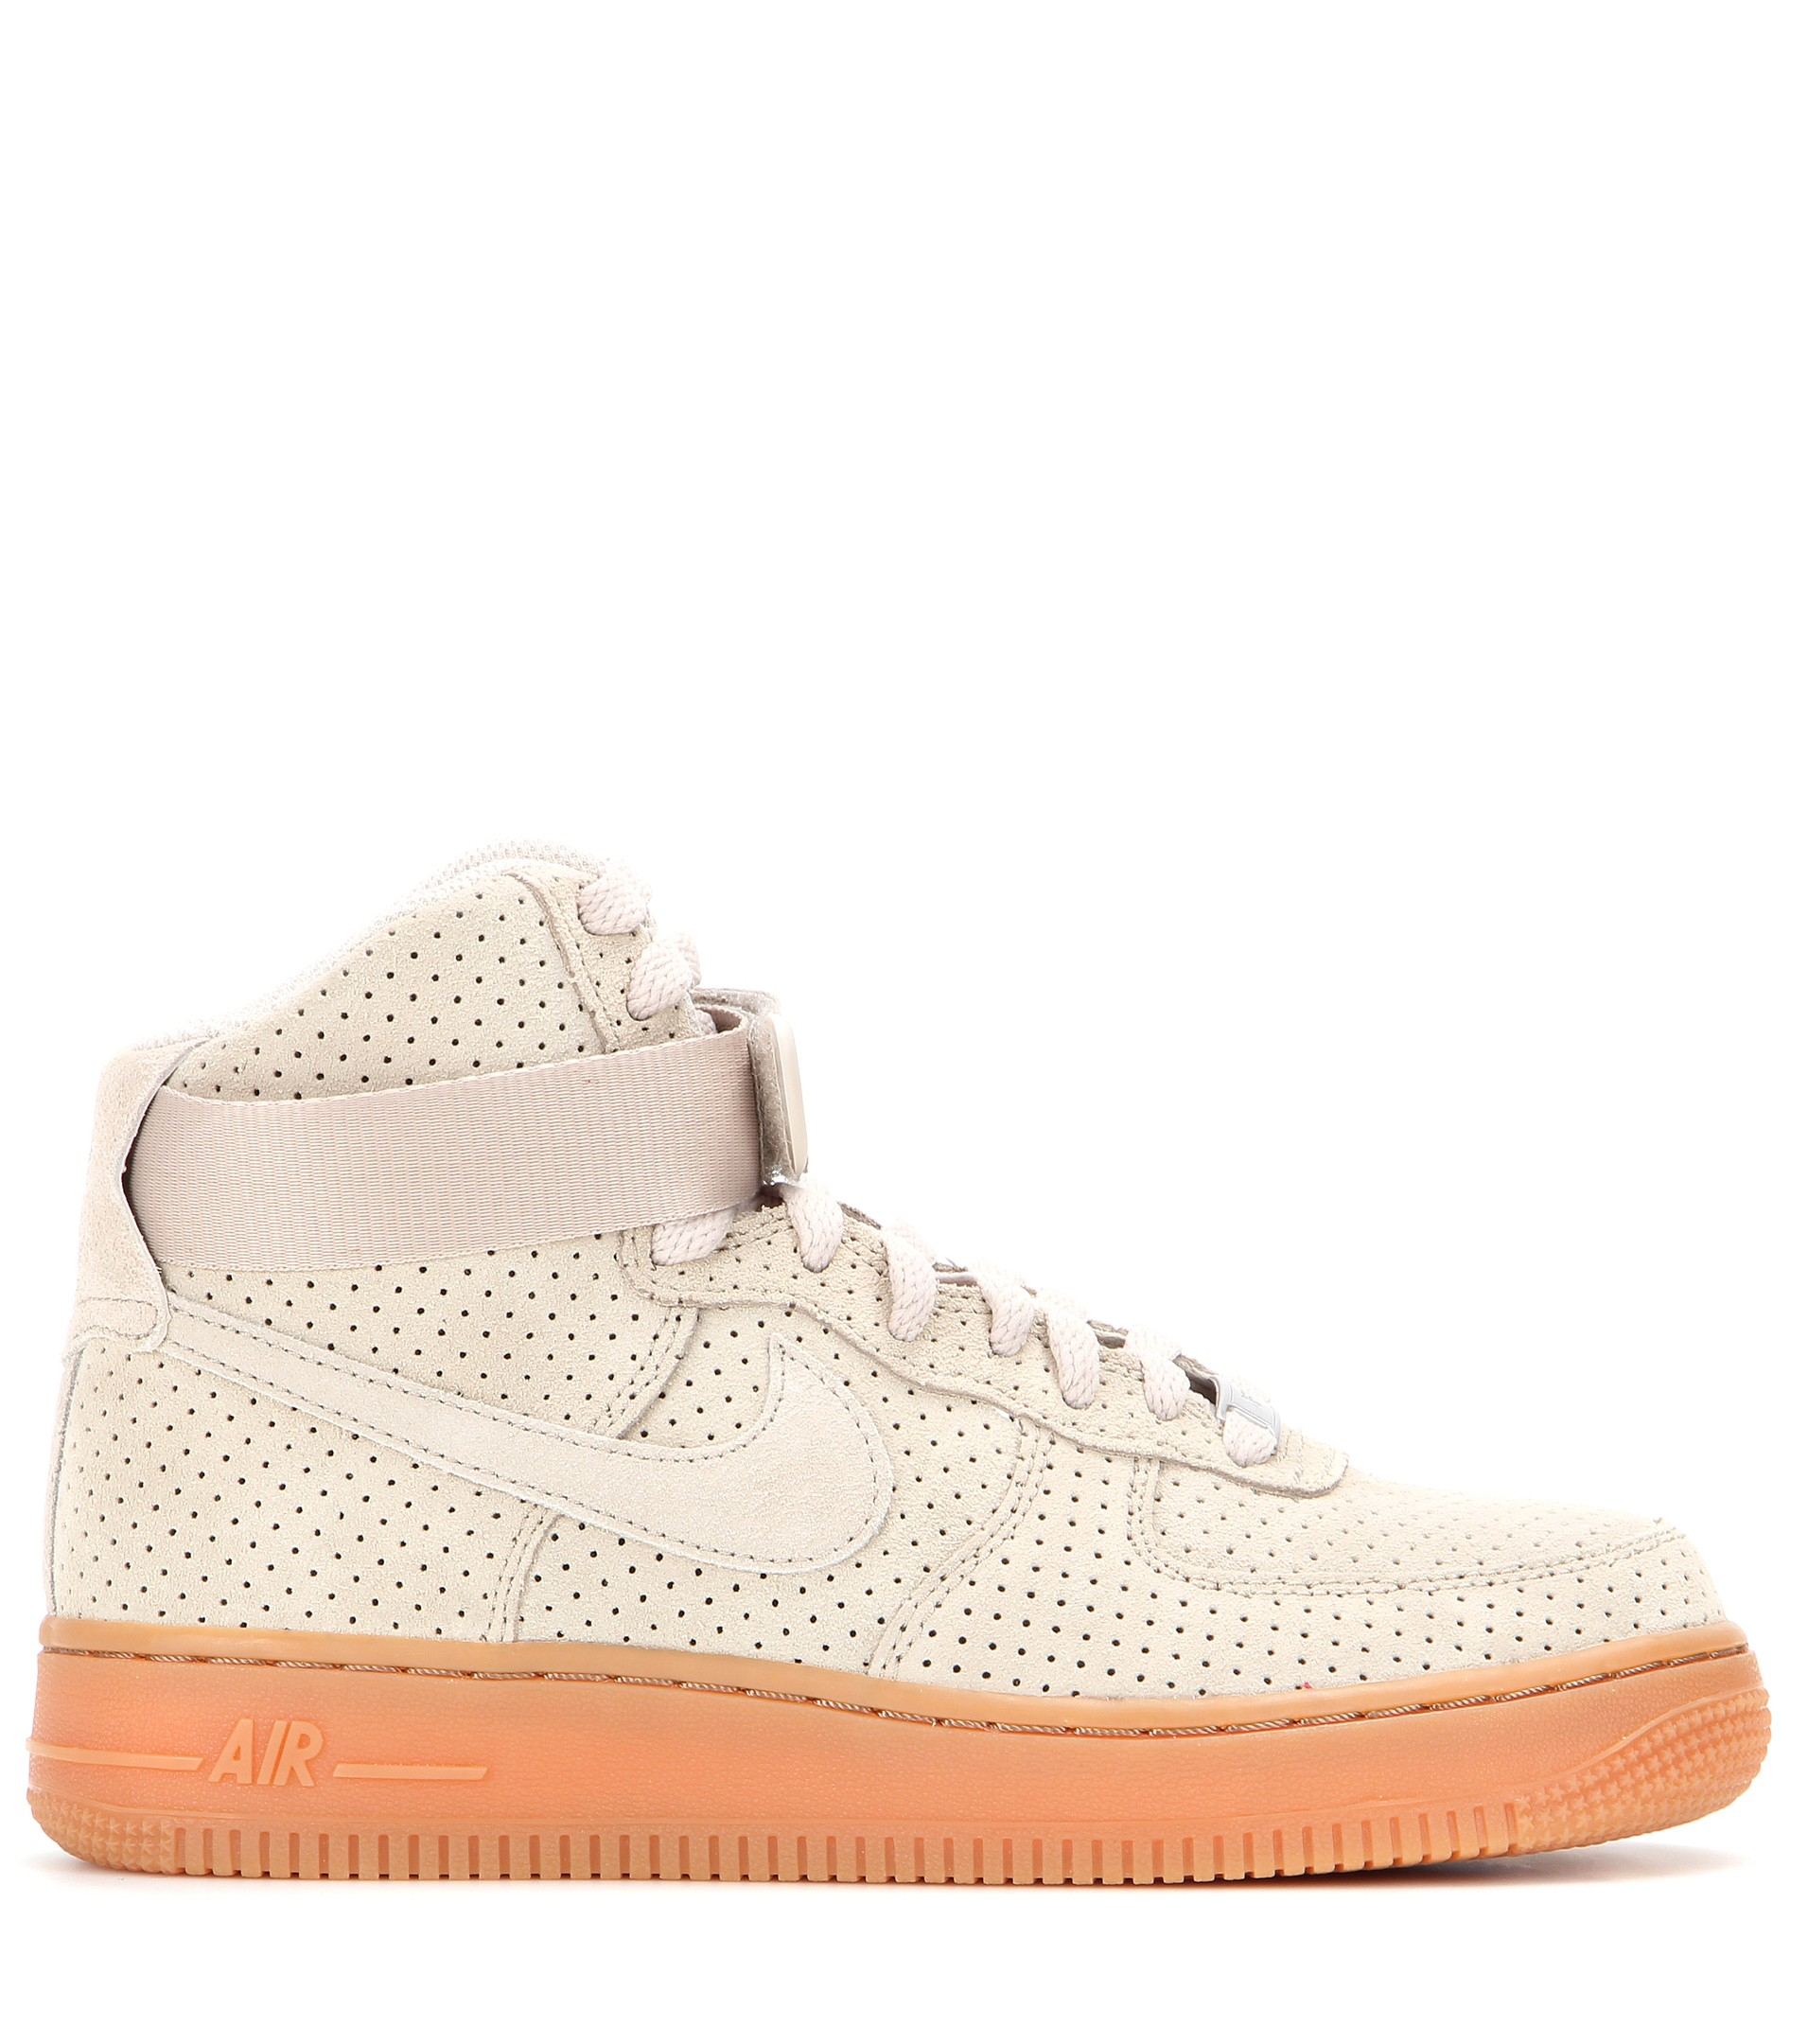 Nike Air Force 1 Premium Suede Trainers